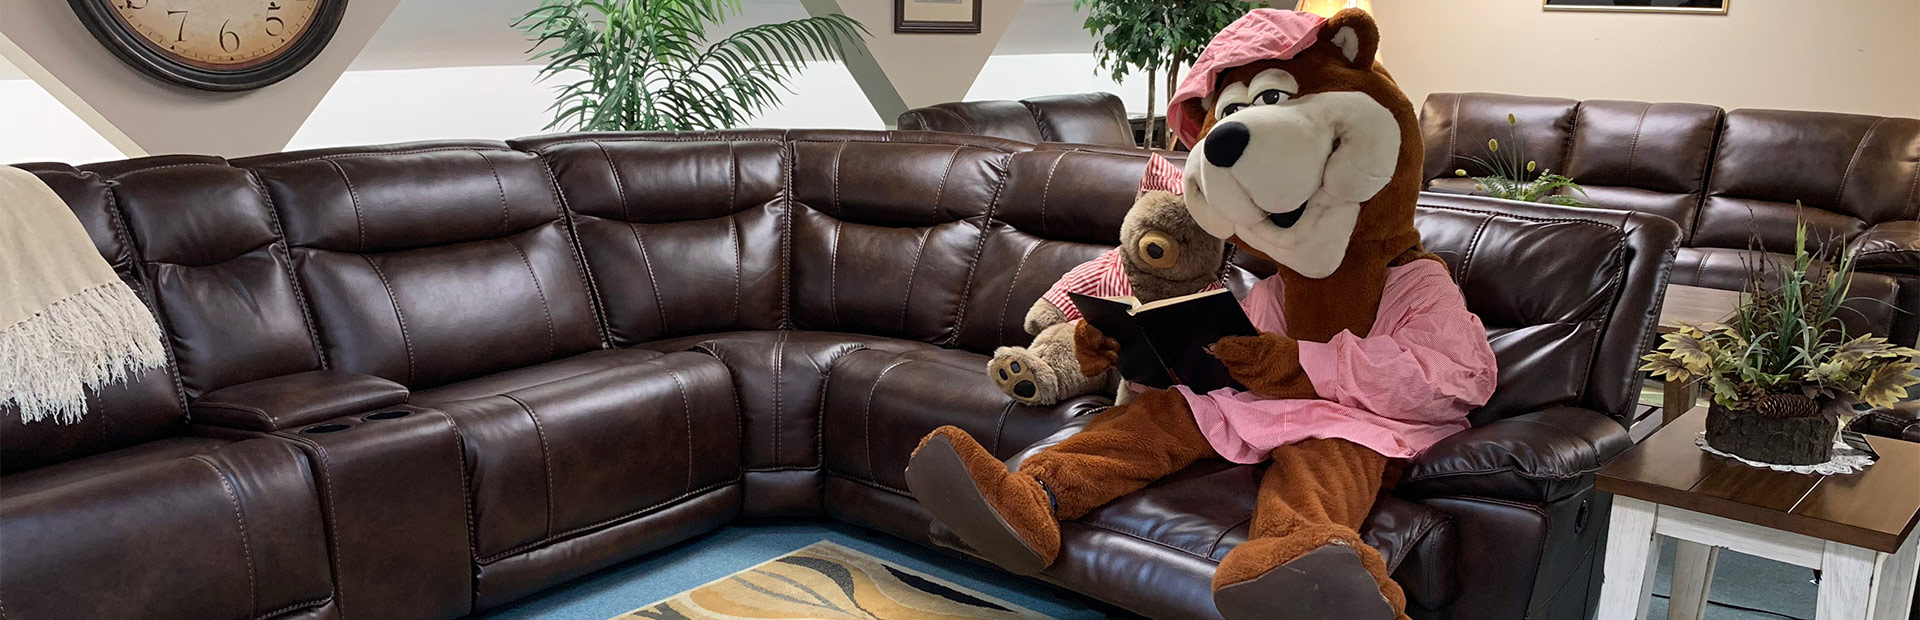 furniture stores living room industrial design maine discount store tuffy bear located in glenburn